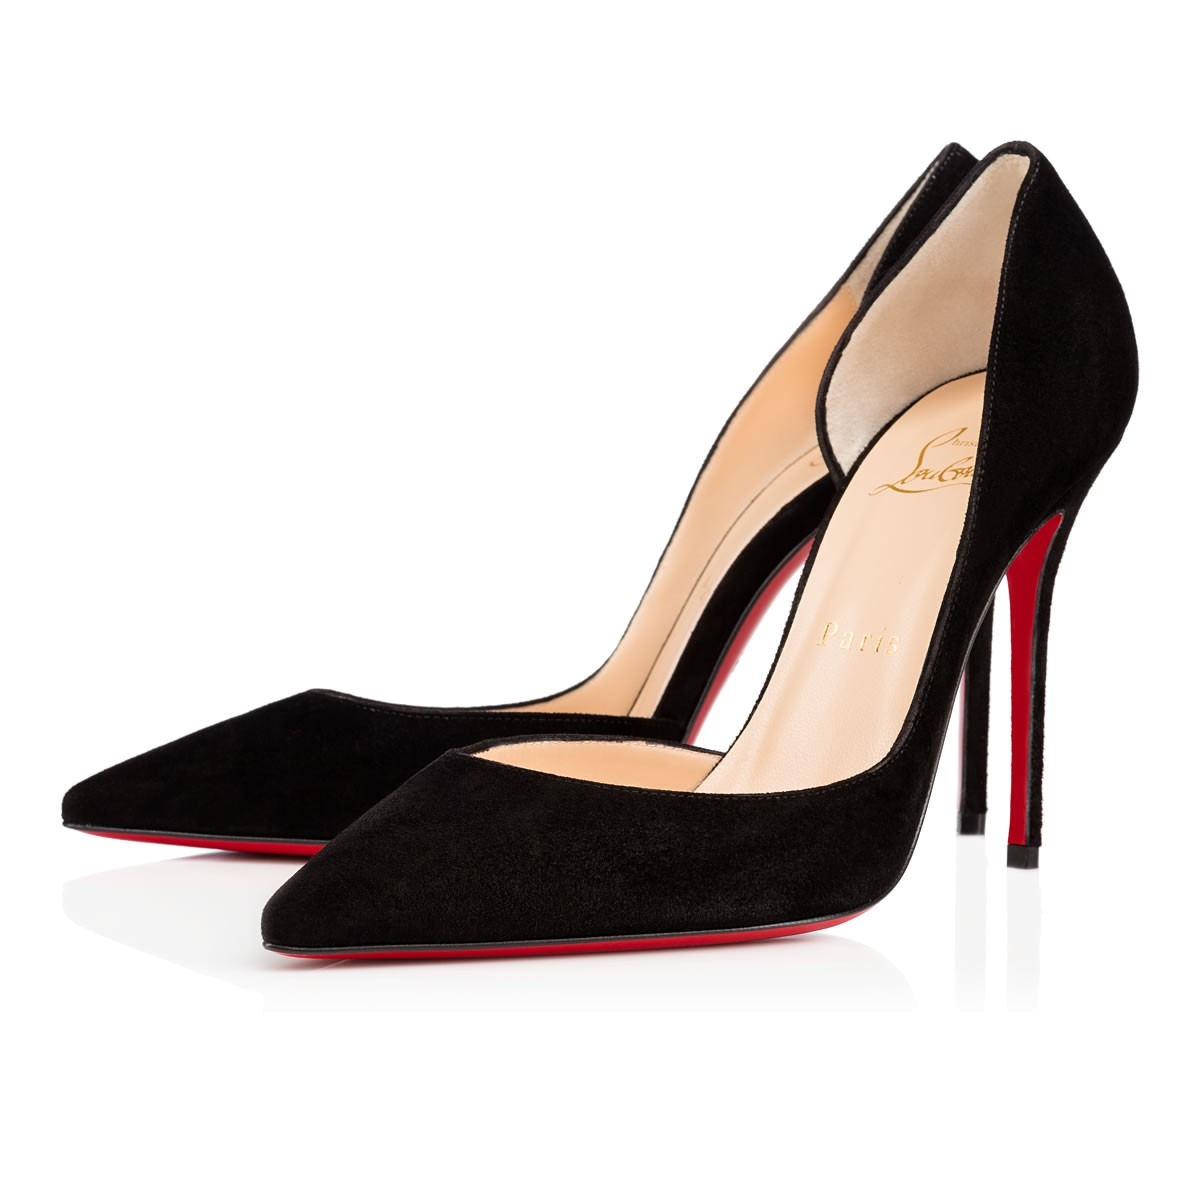 Women Shoes - Iriza Veau Velours - Christian Louboutin